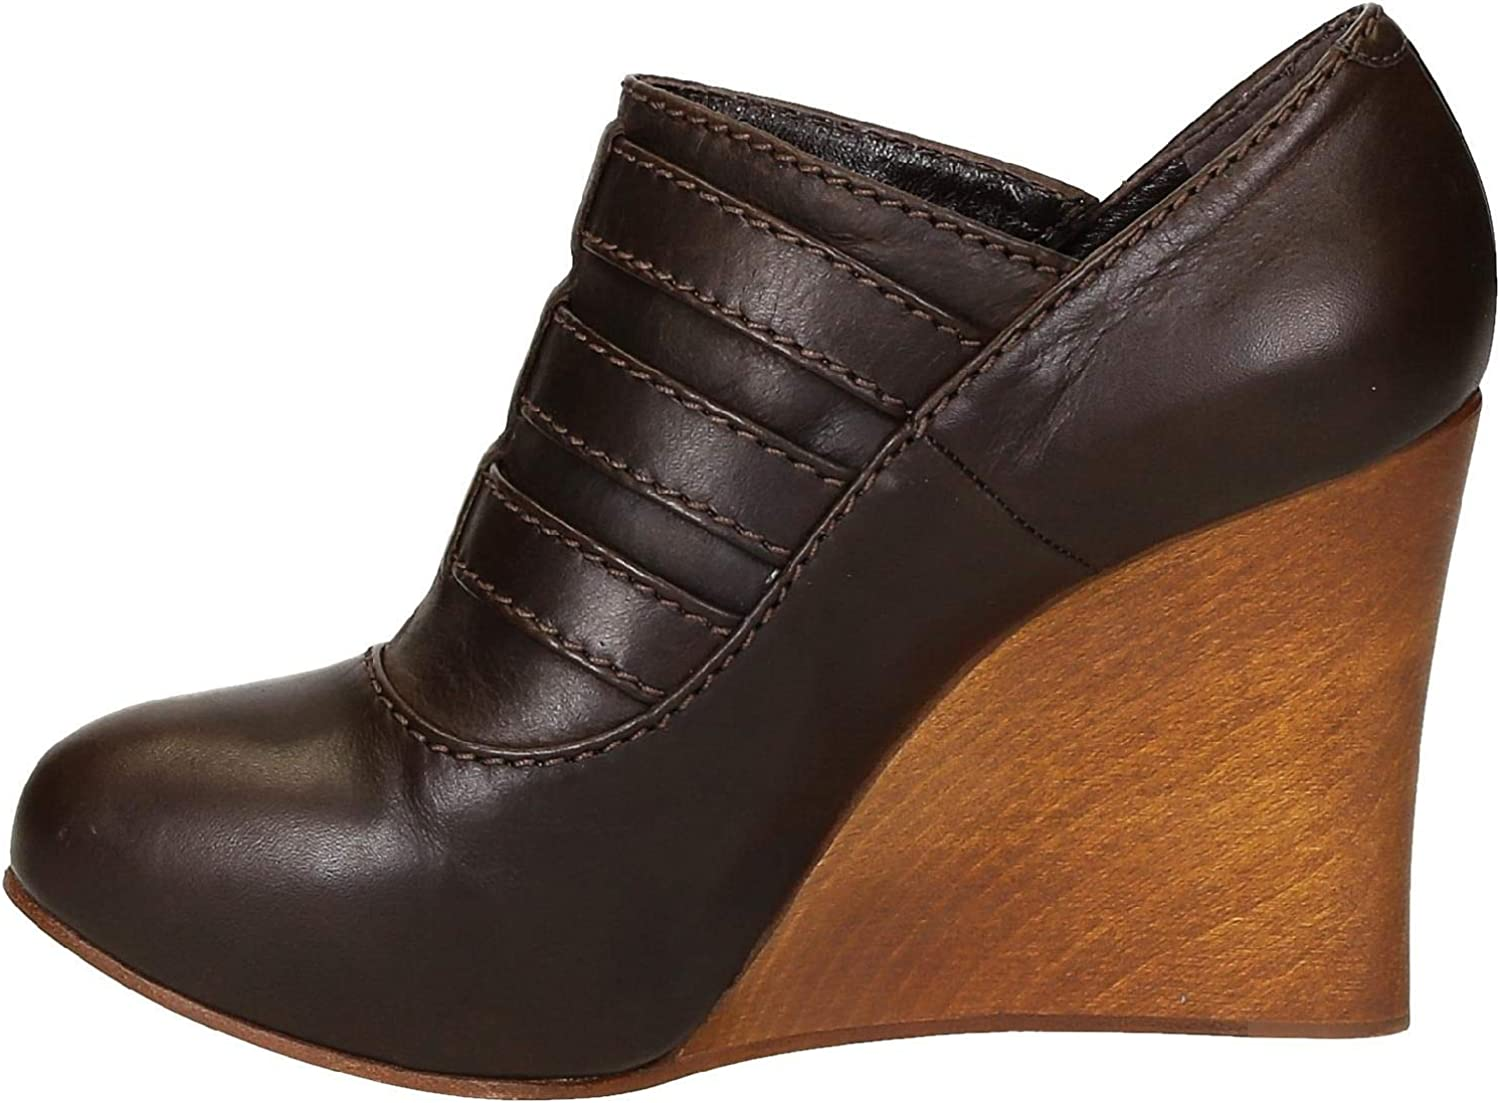 CHLOé Women's CH717100330 Brown Leather Wedges